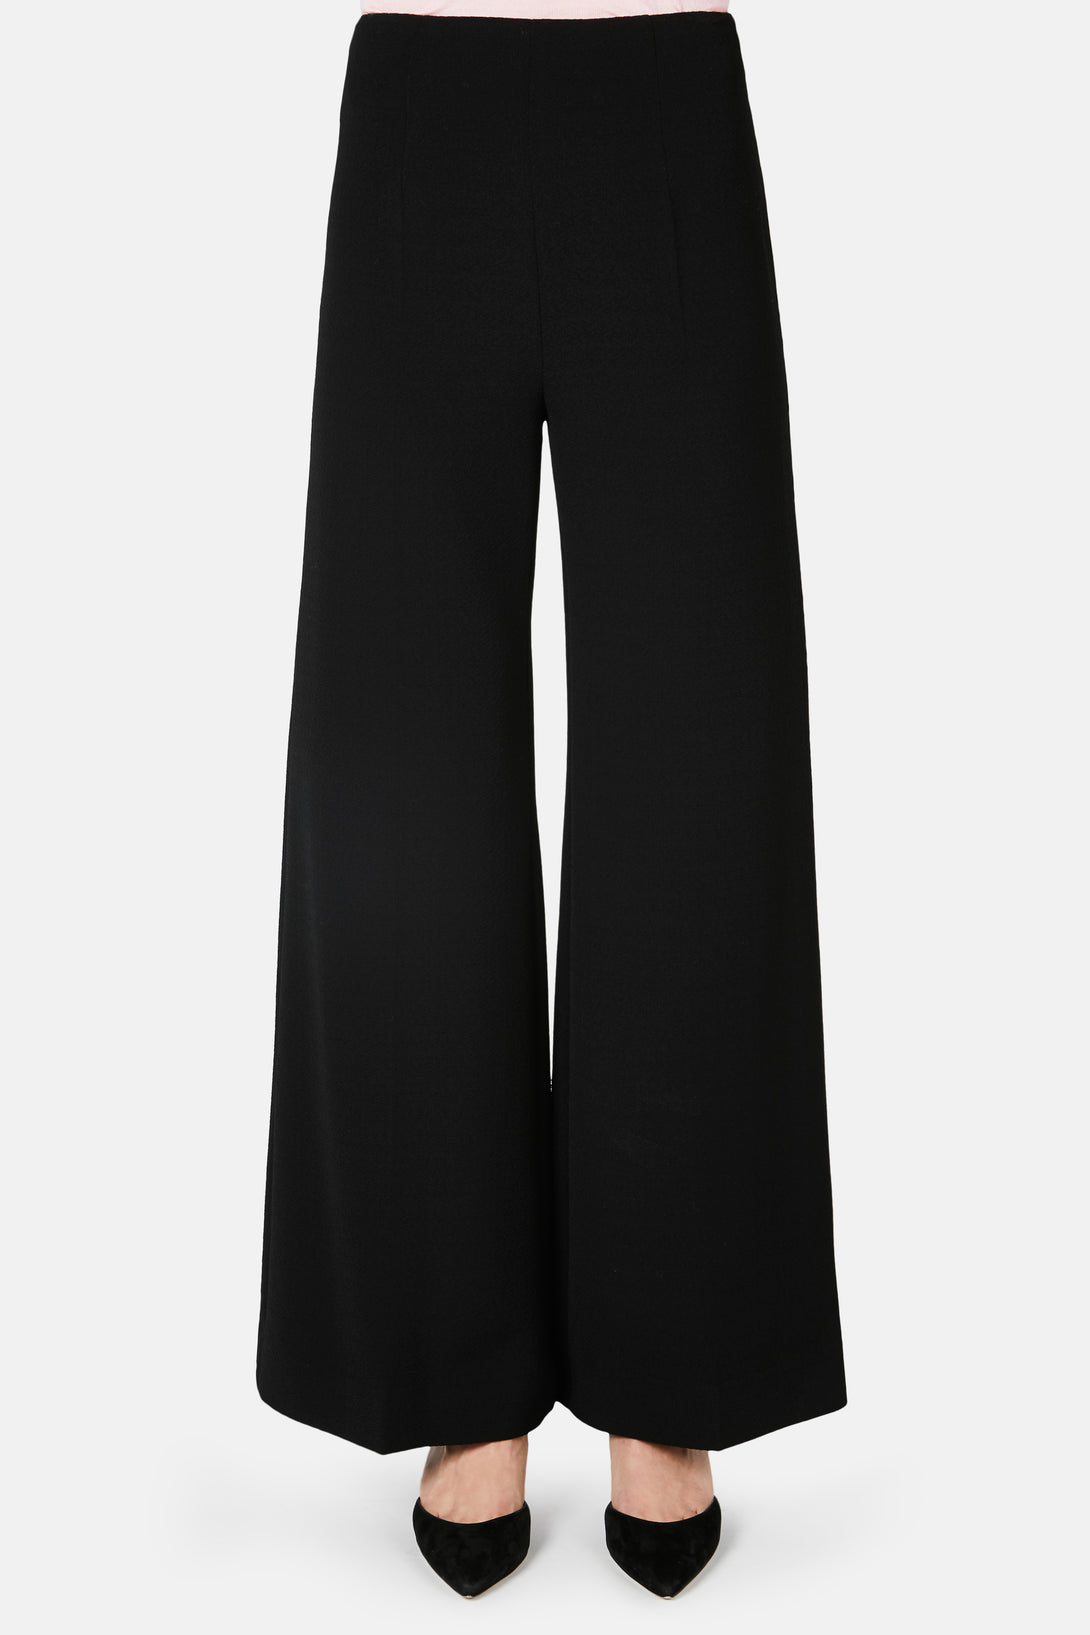 Hullinie Creased Front Trouser - Black